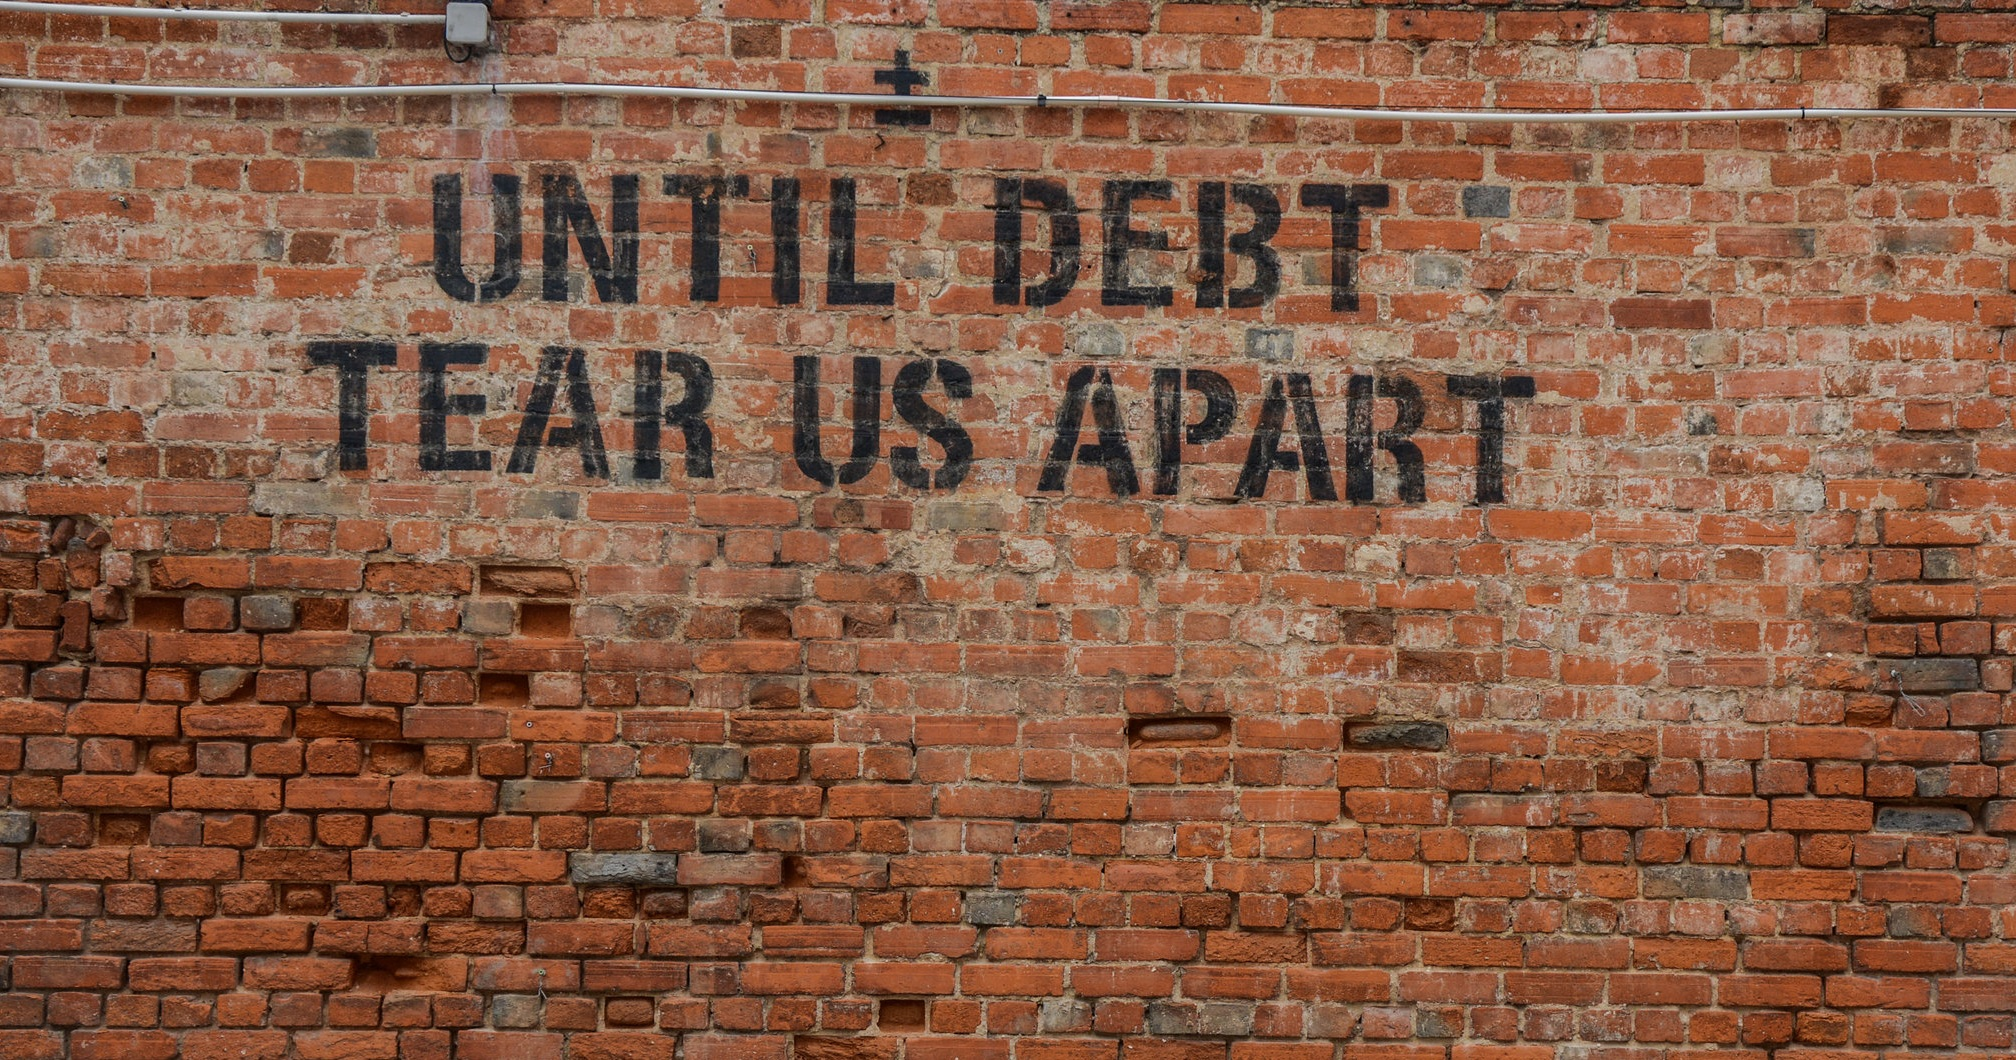 Part 1: What happens to my debt when I die? - What happens when you die owing more than you own? The debt doesn't just disappear.